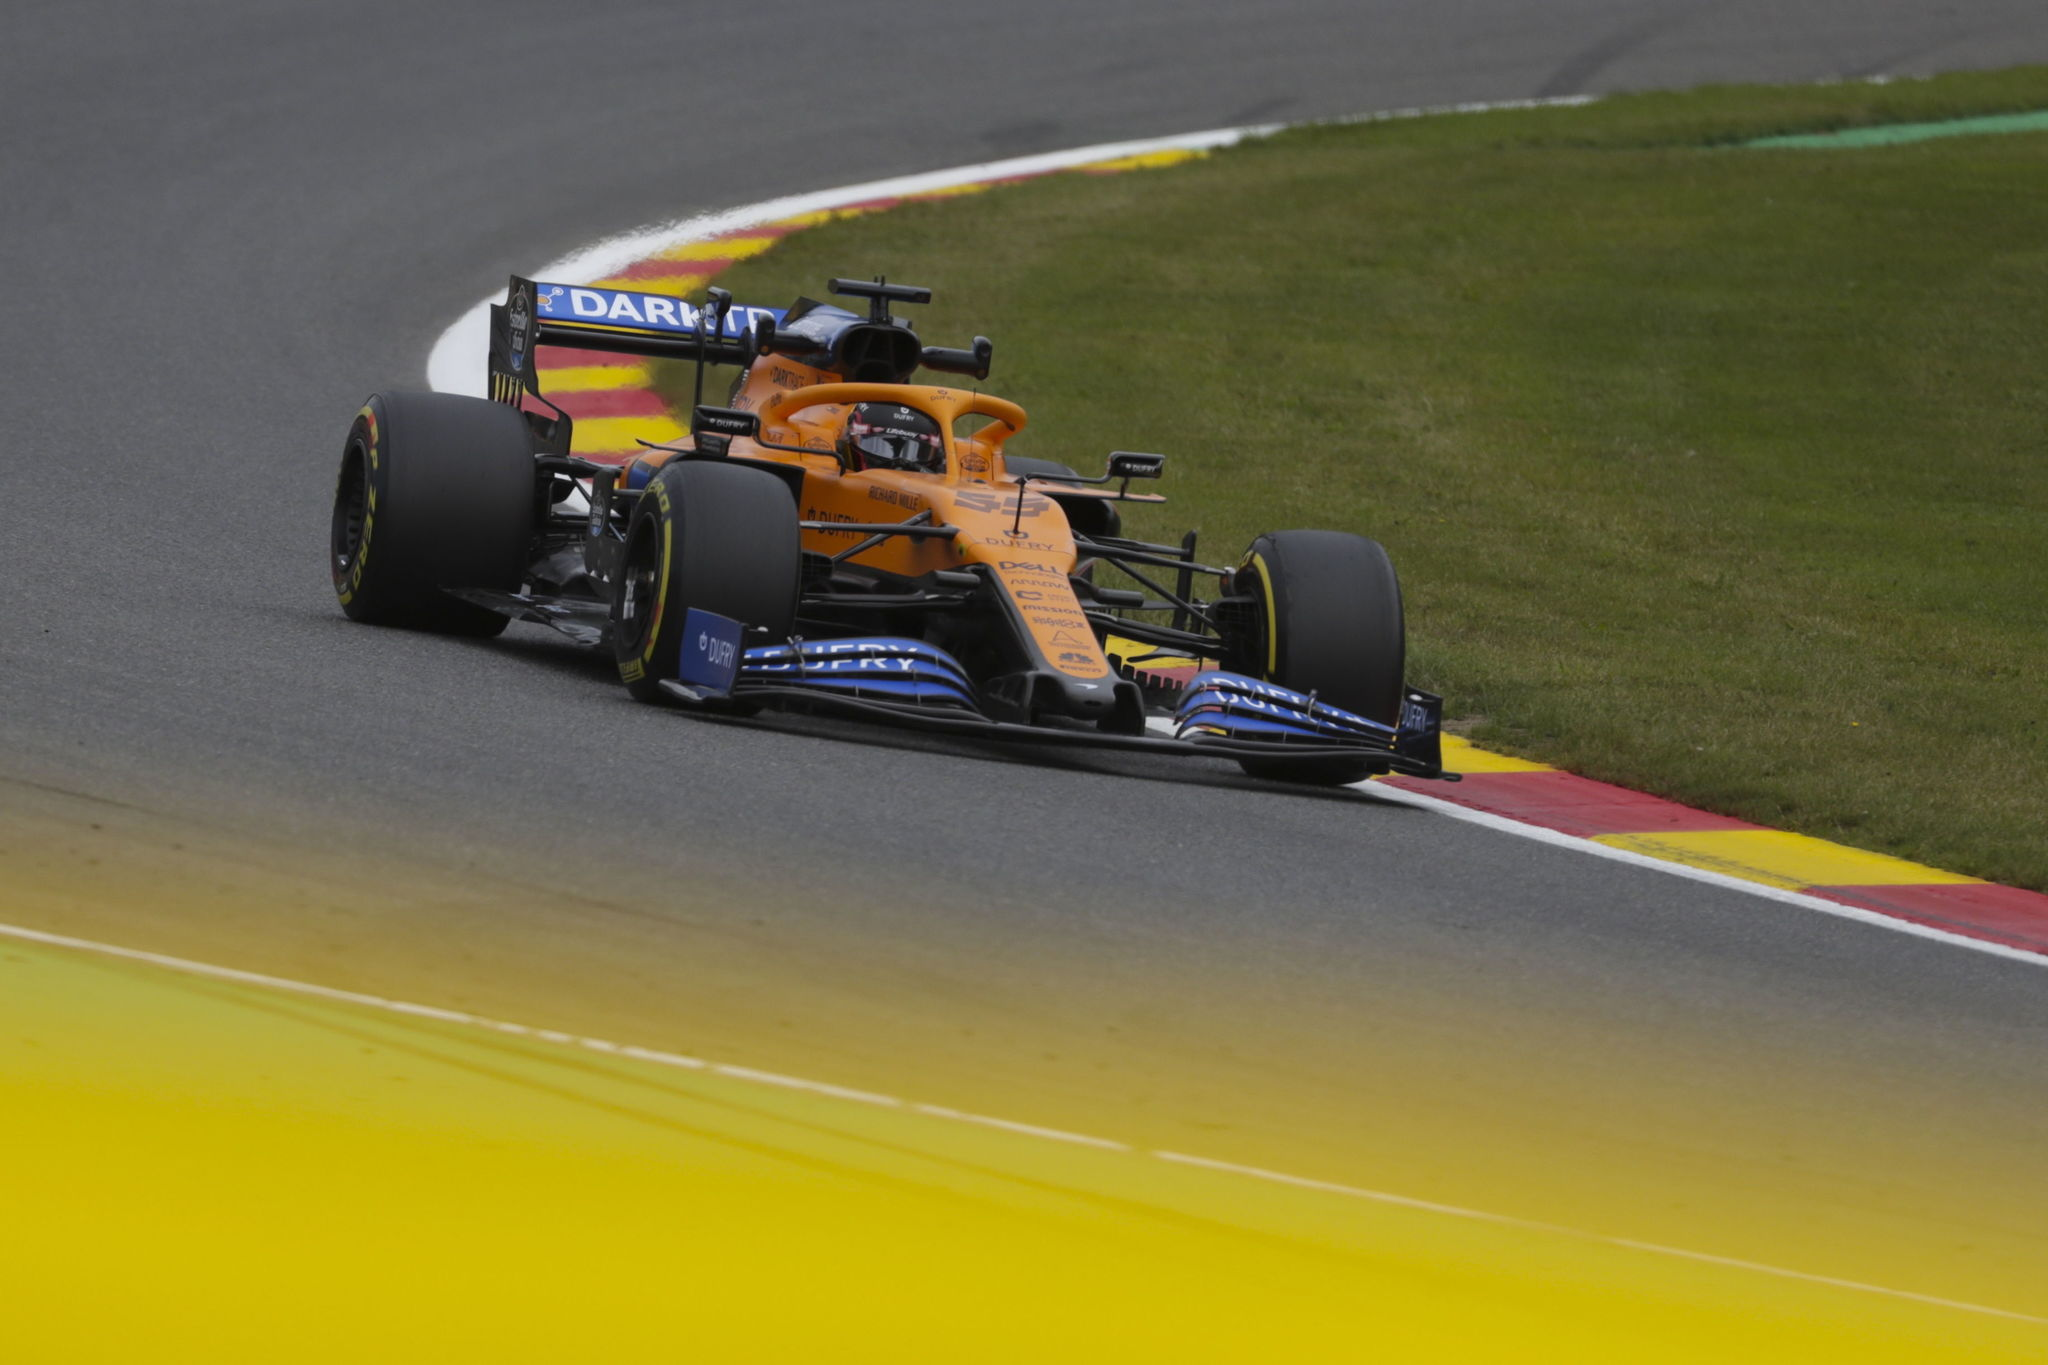 Stavelot (Belgium), 28/08/2020.- Spanish Formula One driver Carlos lt;HIT gt;Sainz lt;/HIT gt; of McLaren in action during the second practice session at the Spa-Francorchamps race track in Stavelot, Belgium, 28 August 2019. The 2020 Formula One Grand Prix of Belgium will take place on 30 August 2020. (Fórmula Uno, Bélgica) EFE/EPA/Stephanie Lecocq / Pool